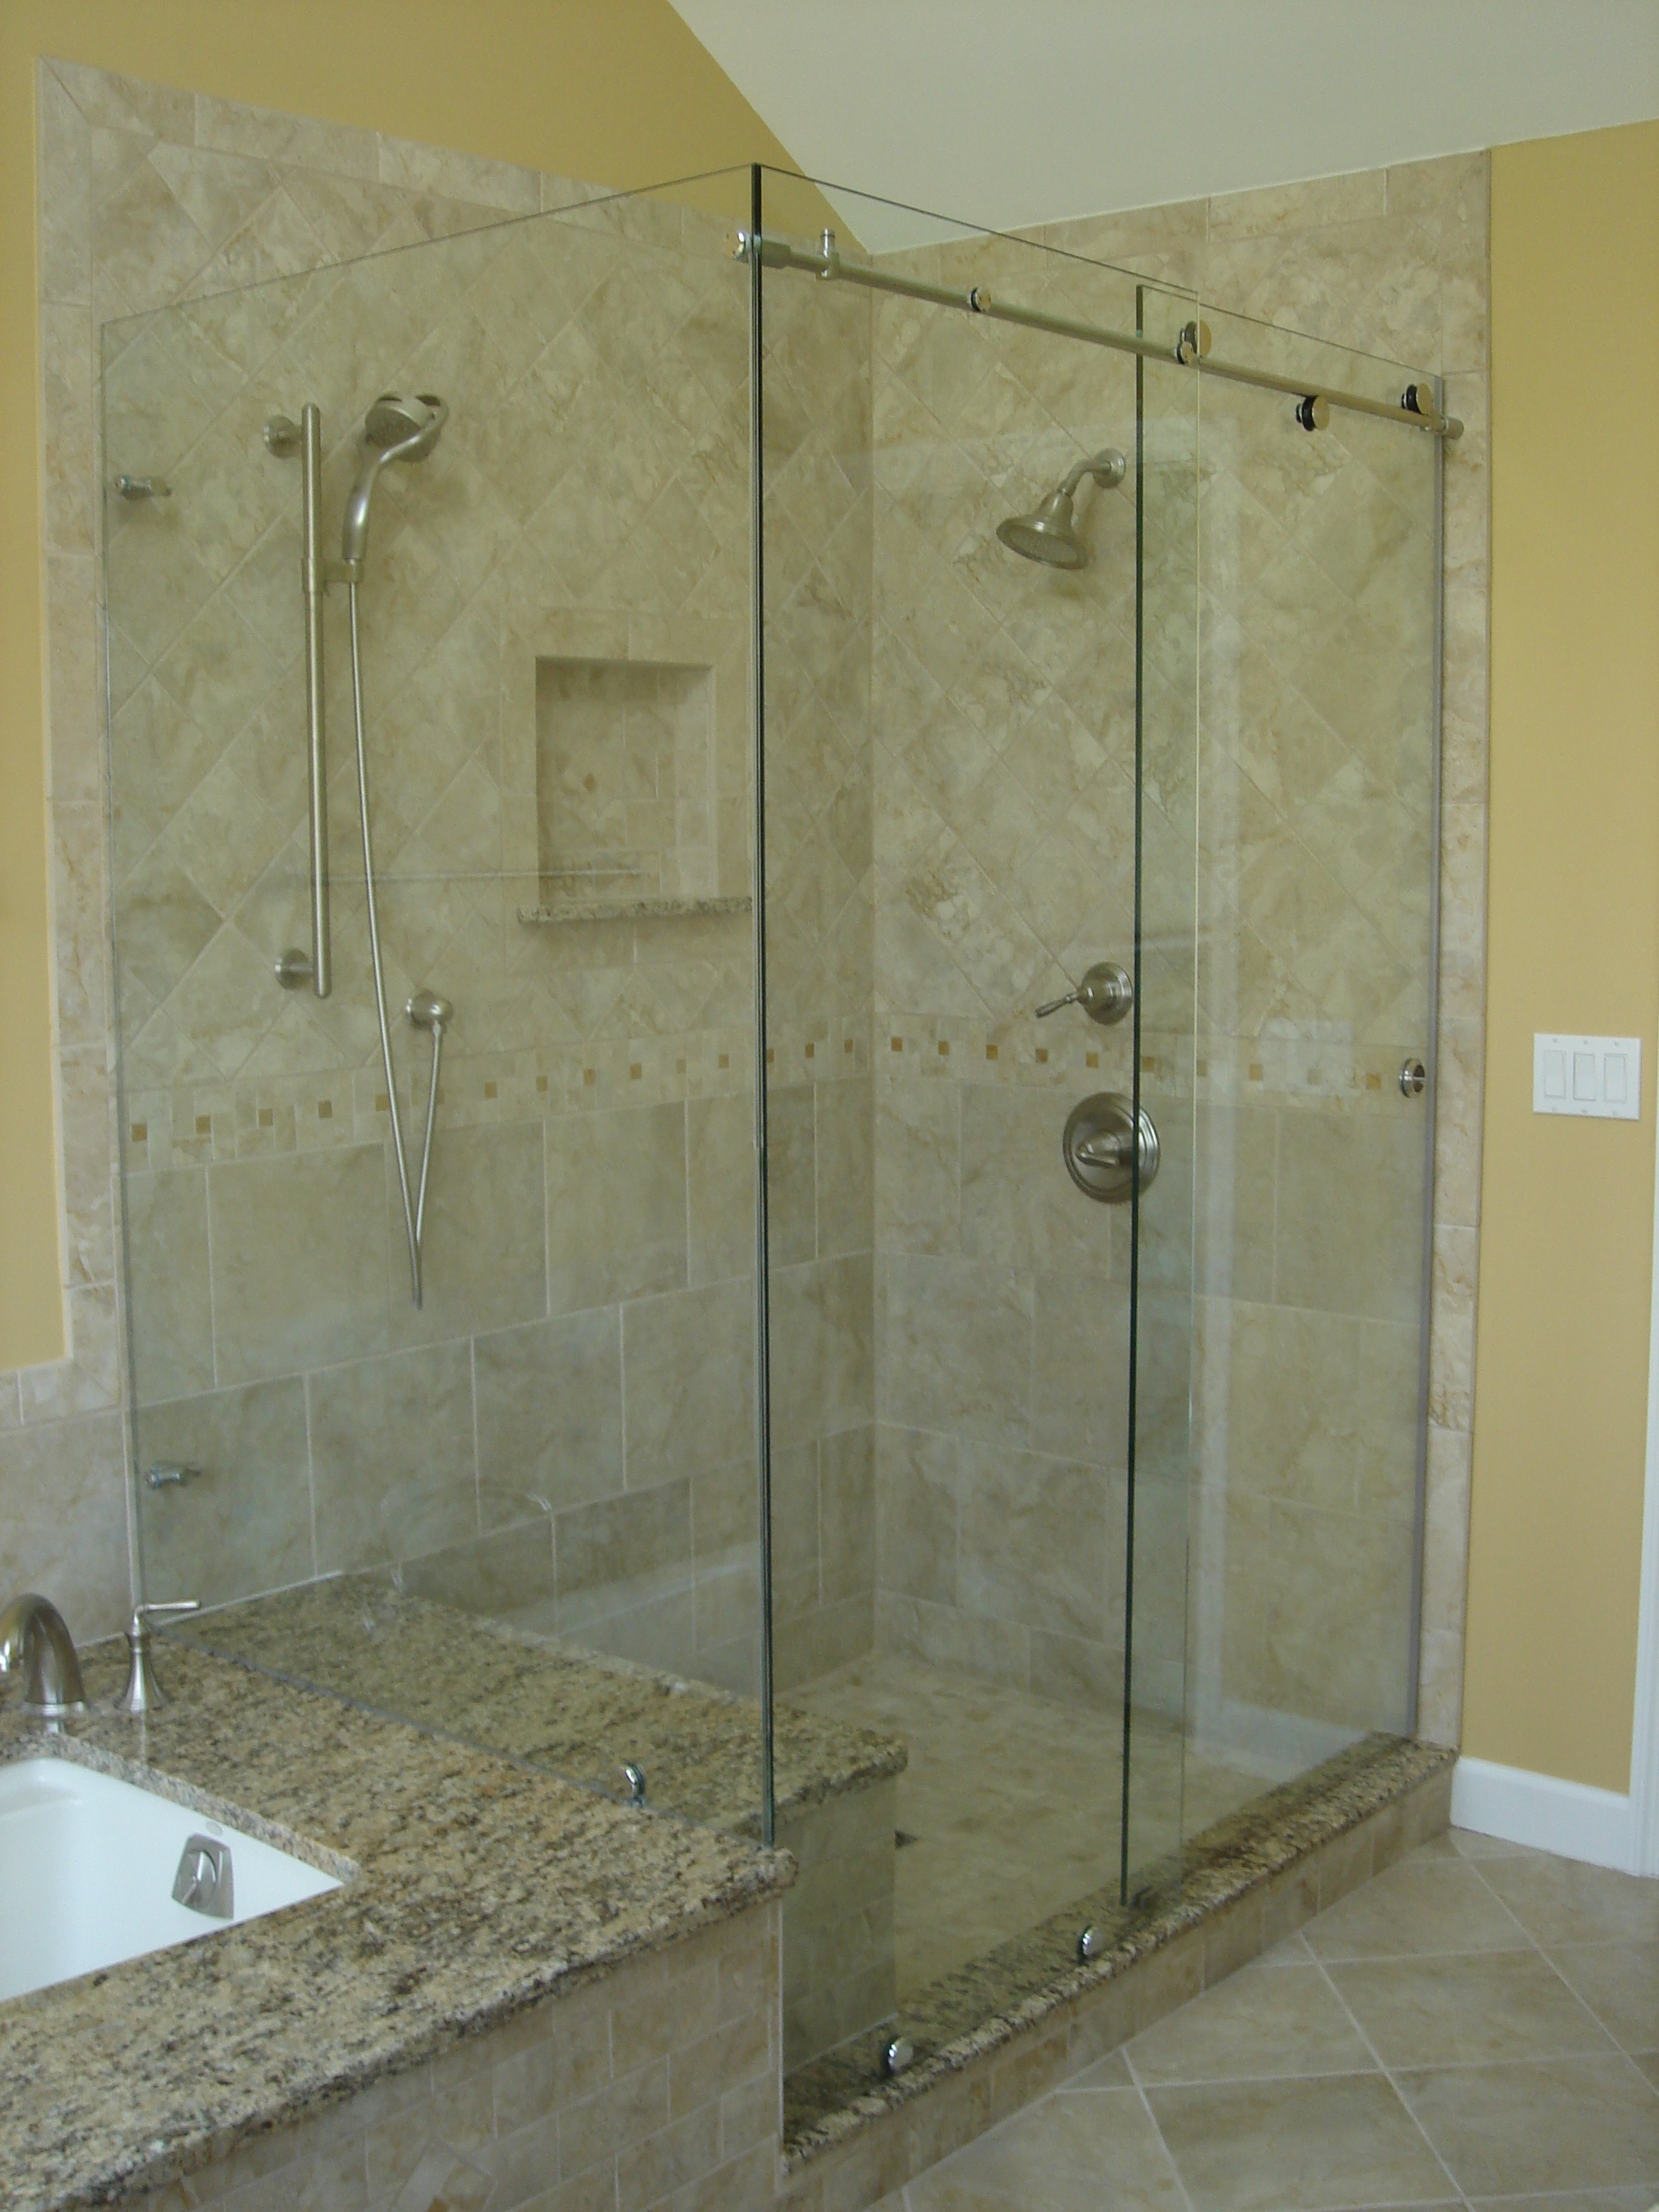 Bypass sliding shower doors modern glass designs for Modern glass designs